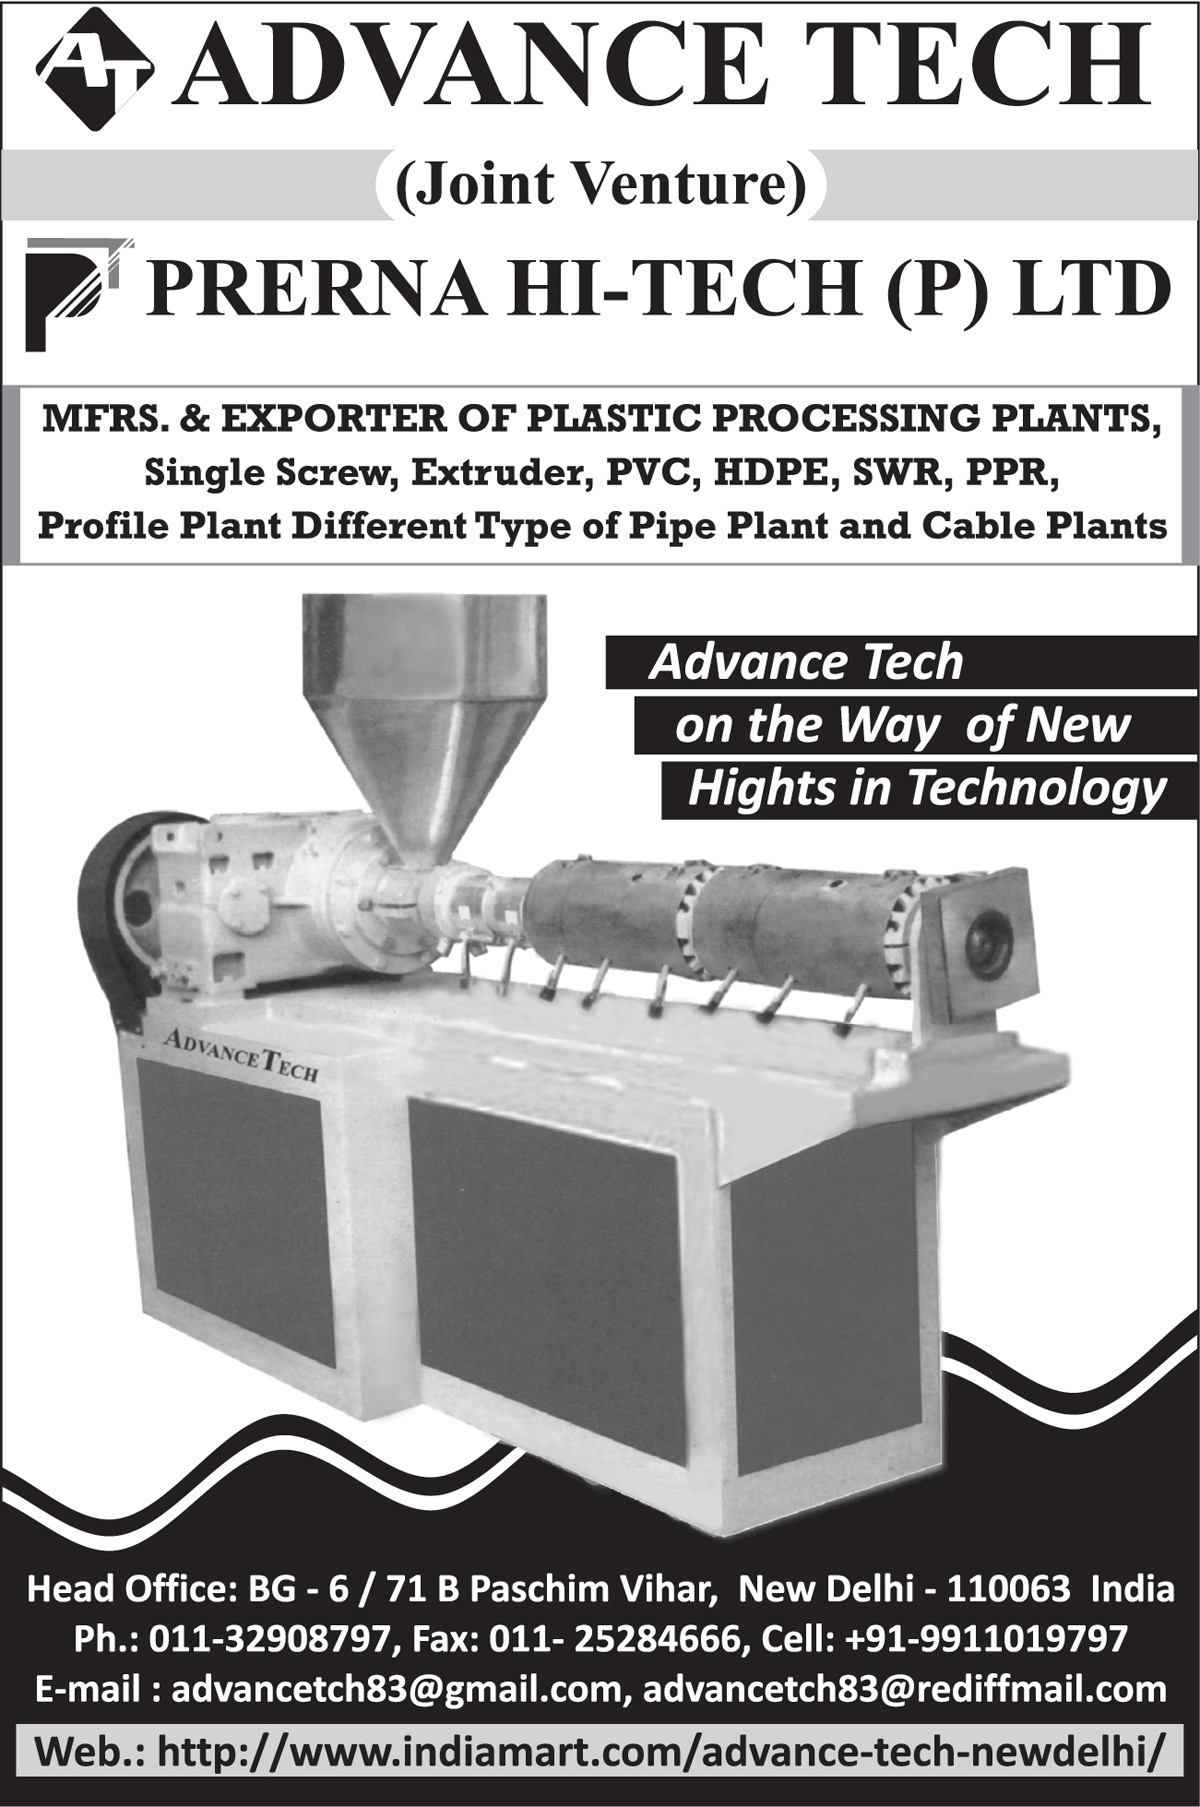 Plastic Processing Plants, Single Screws, Extruder, PVC Profile Plnats, HDPE Profile Plants, SWR Plants, PPR Profile Plants, Pipe Plants, Cable Plants,Cutter Pullers, Screw, Barrel, Industrial Equipments, Payoff Take Ups